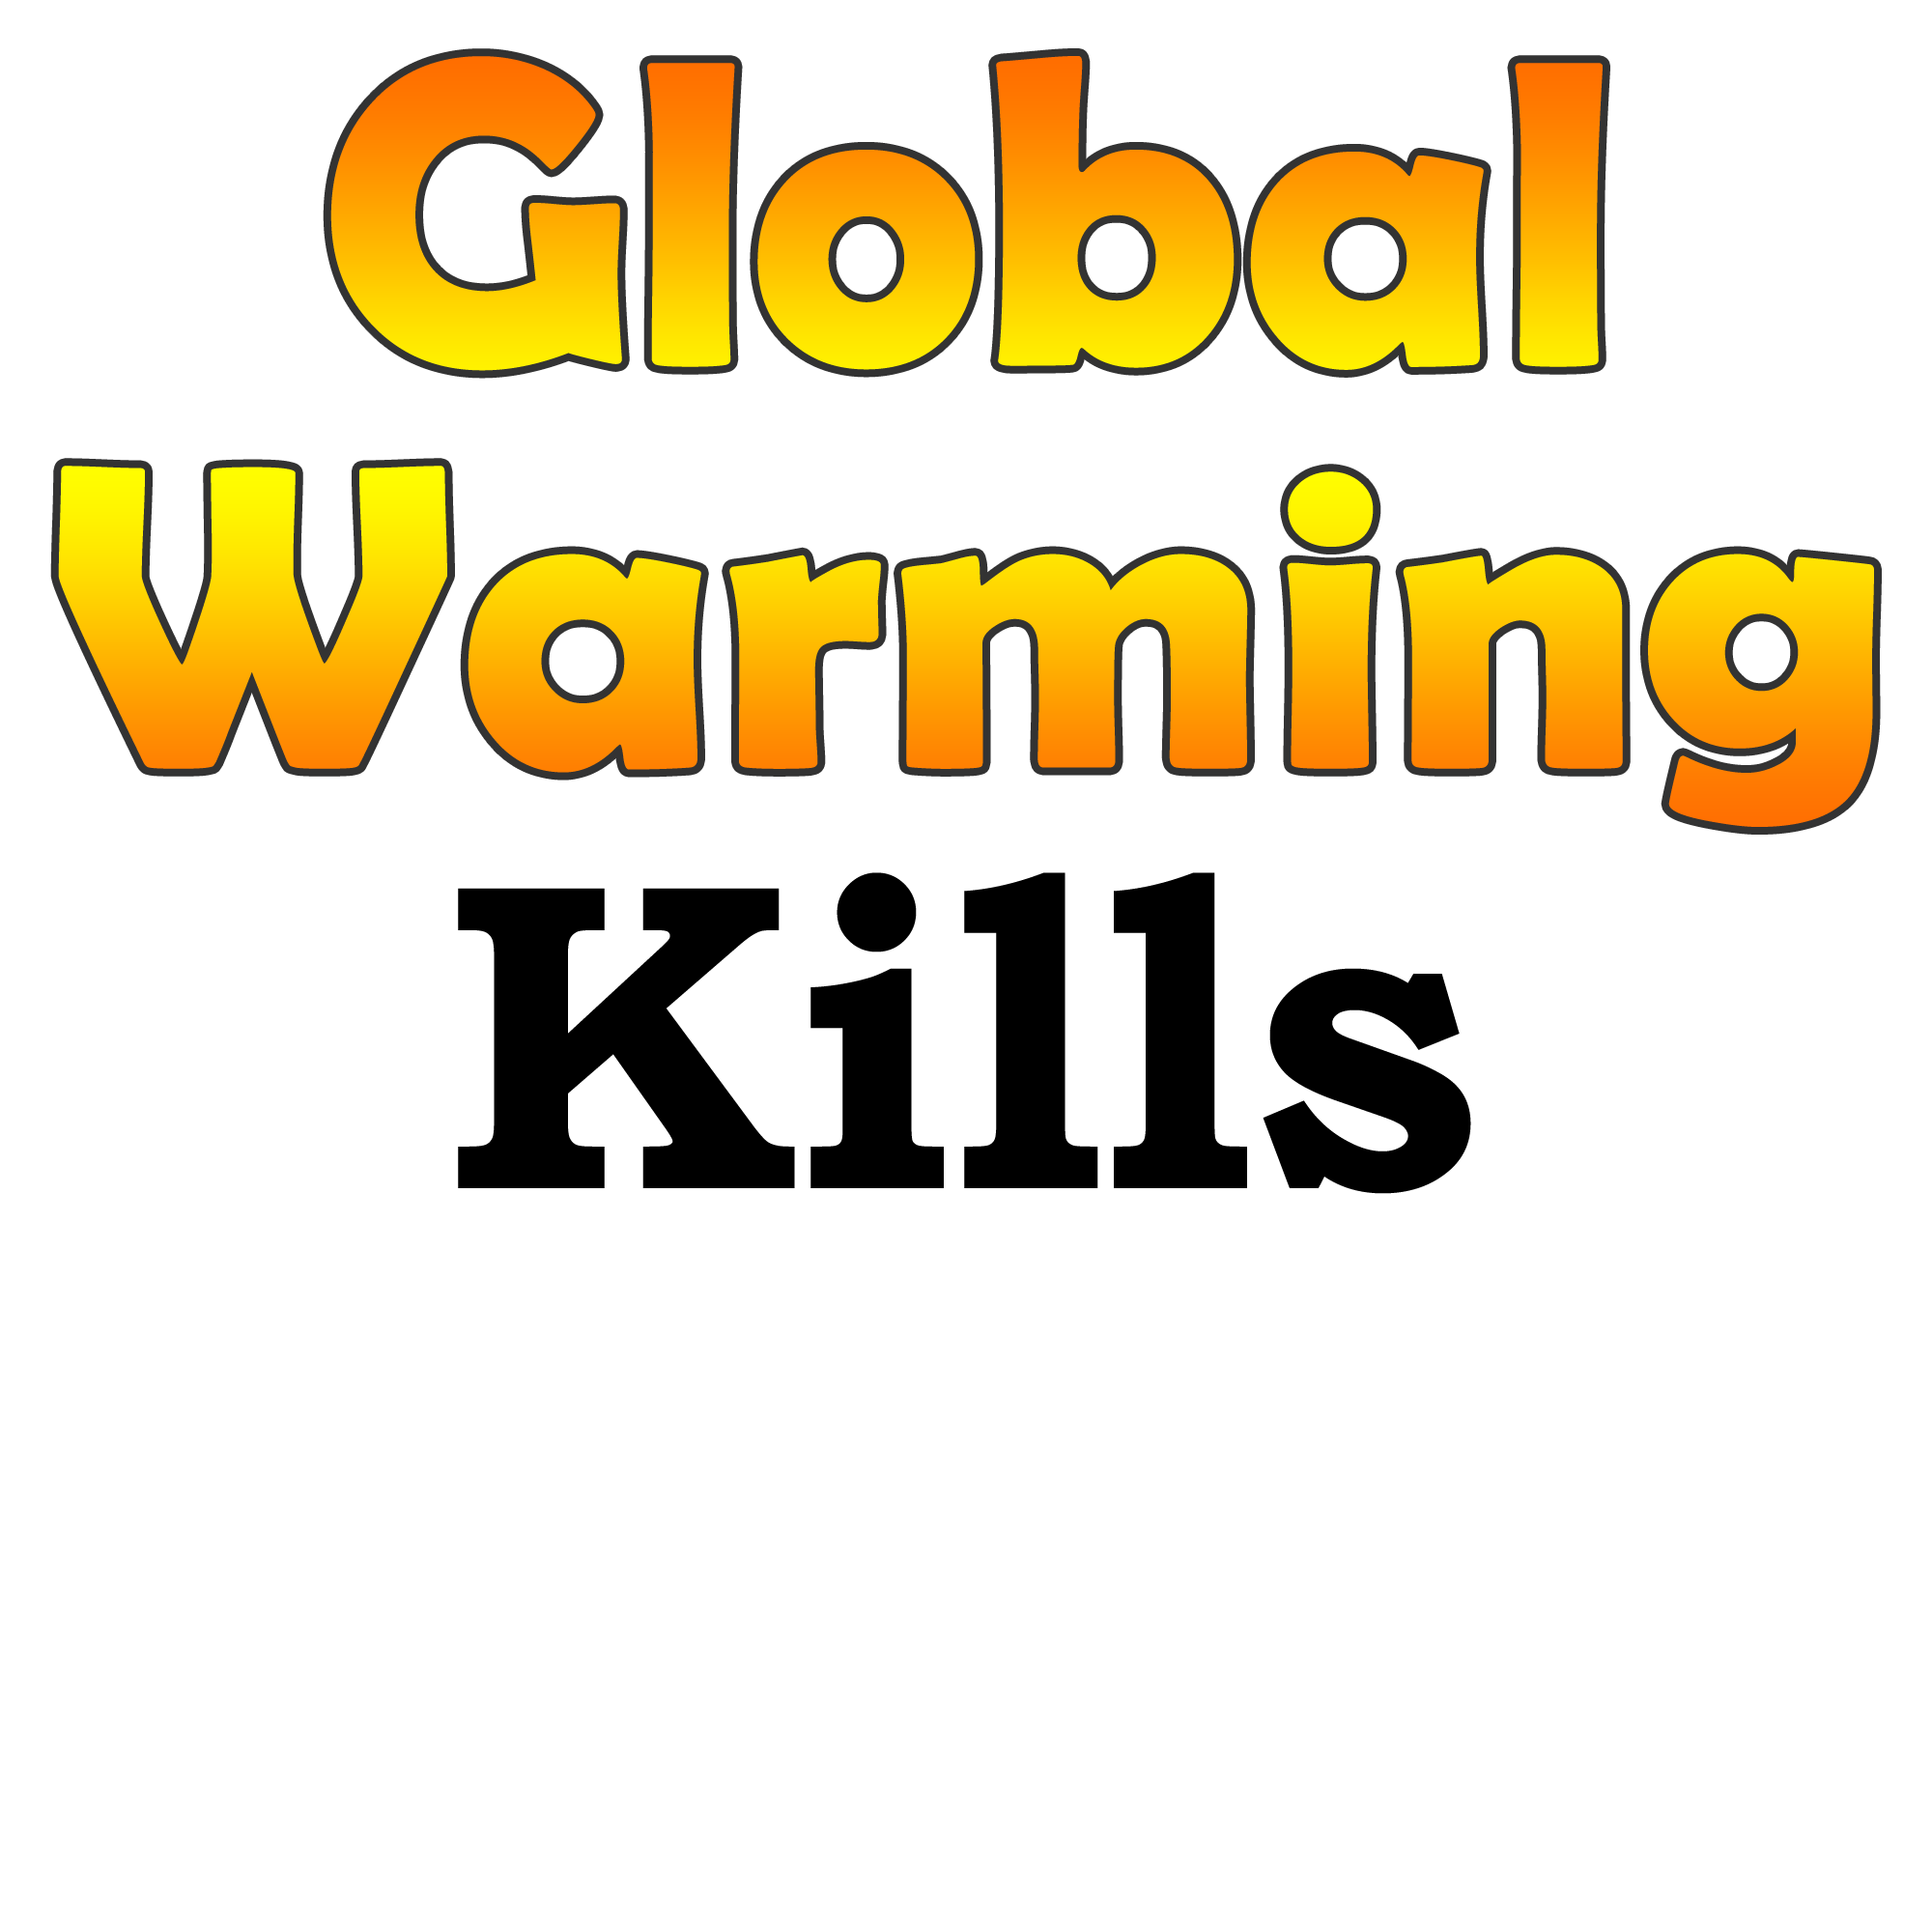 One Of The Most Important Problems That Face The Humanity Today Is The Global Warming Take Action And Show Your Support For The Survival Of The Humanity With T